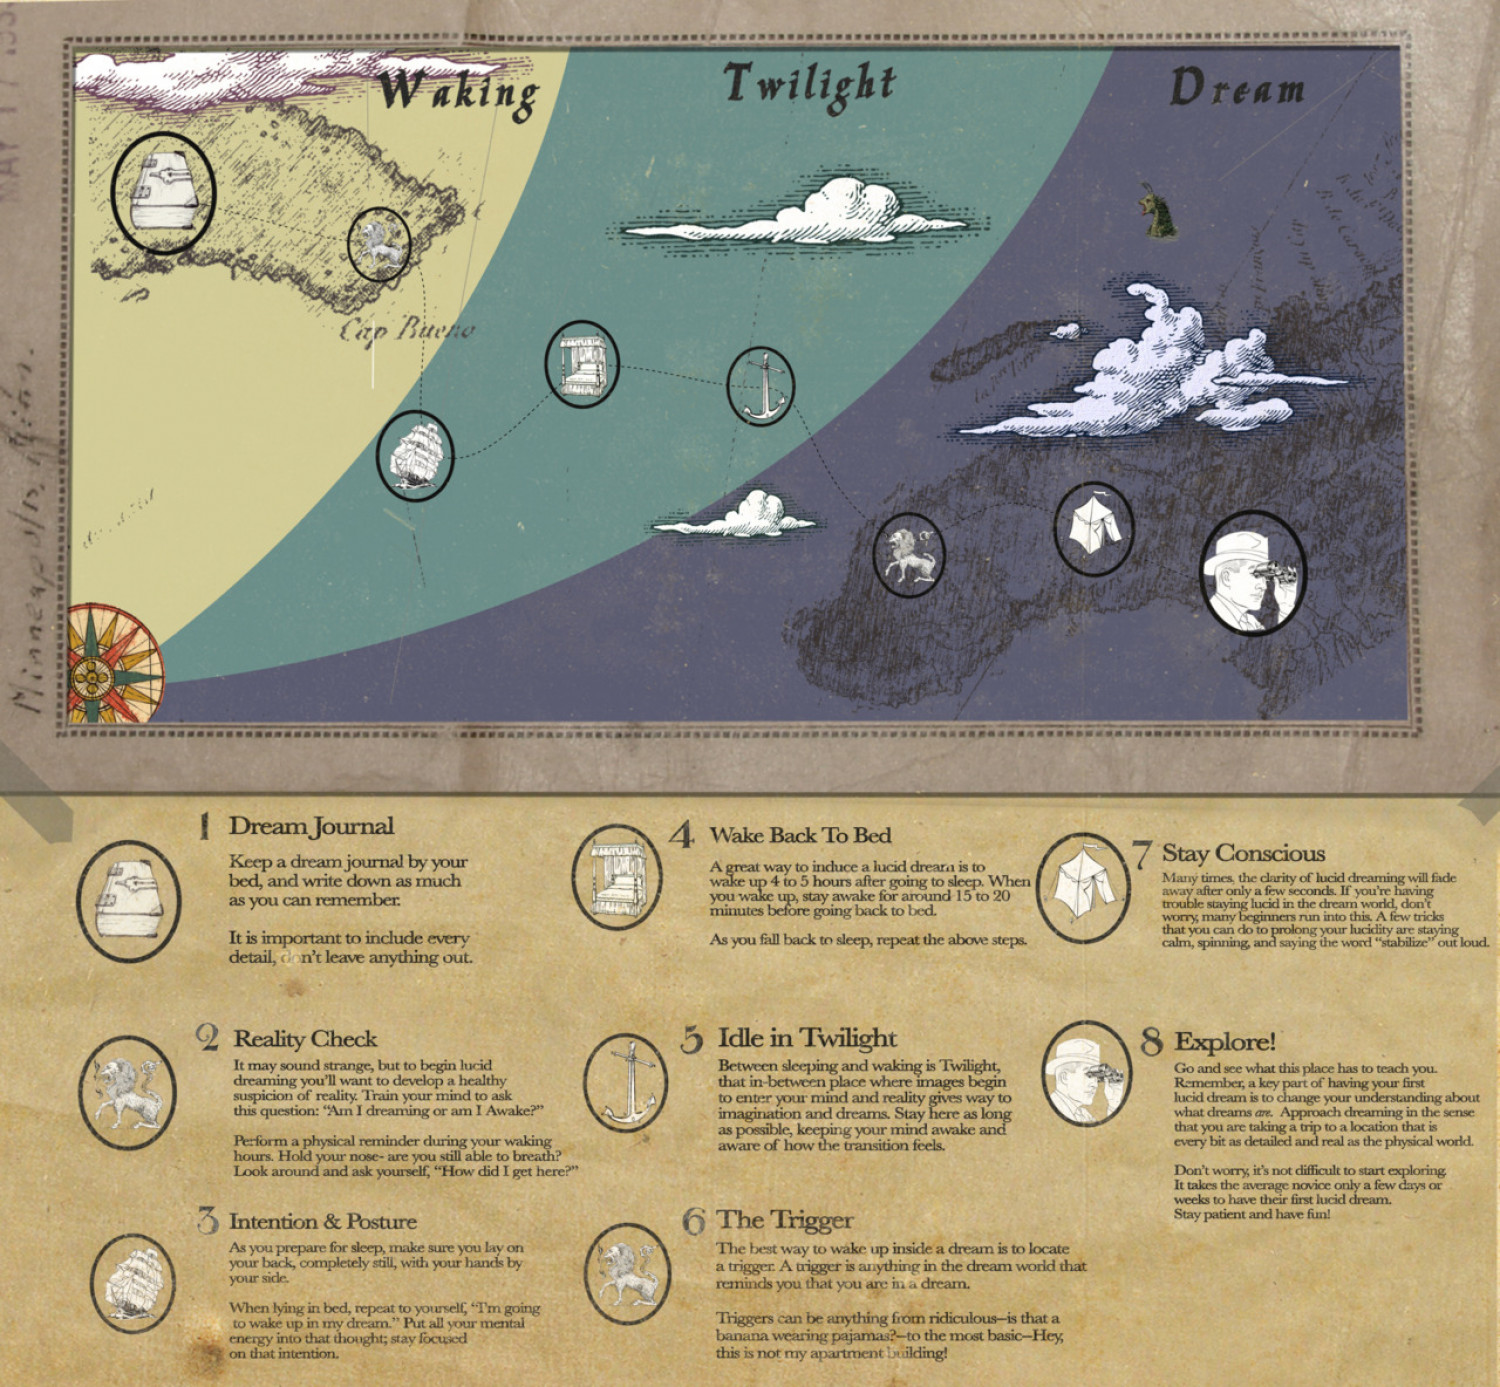 Waking Twilight Dream  Infographic